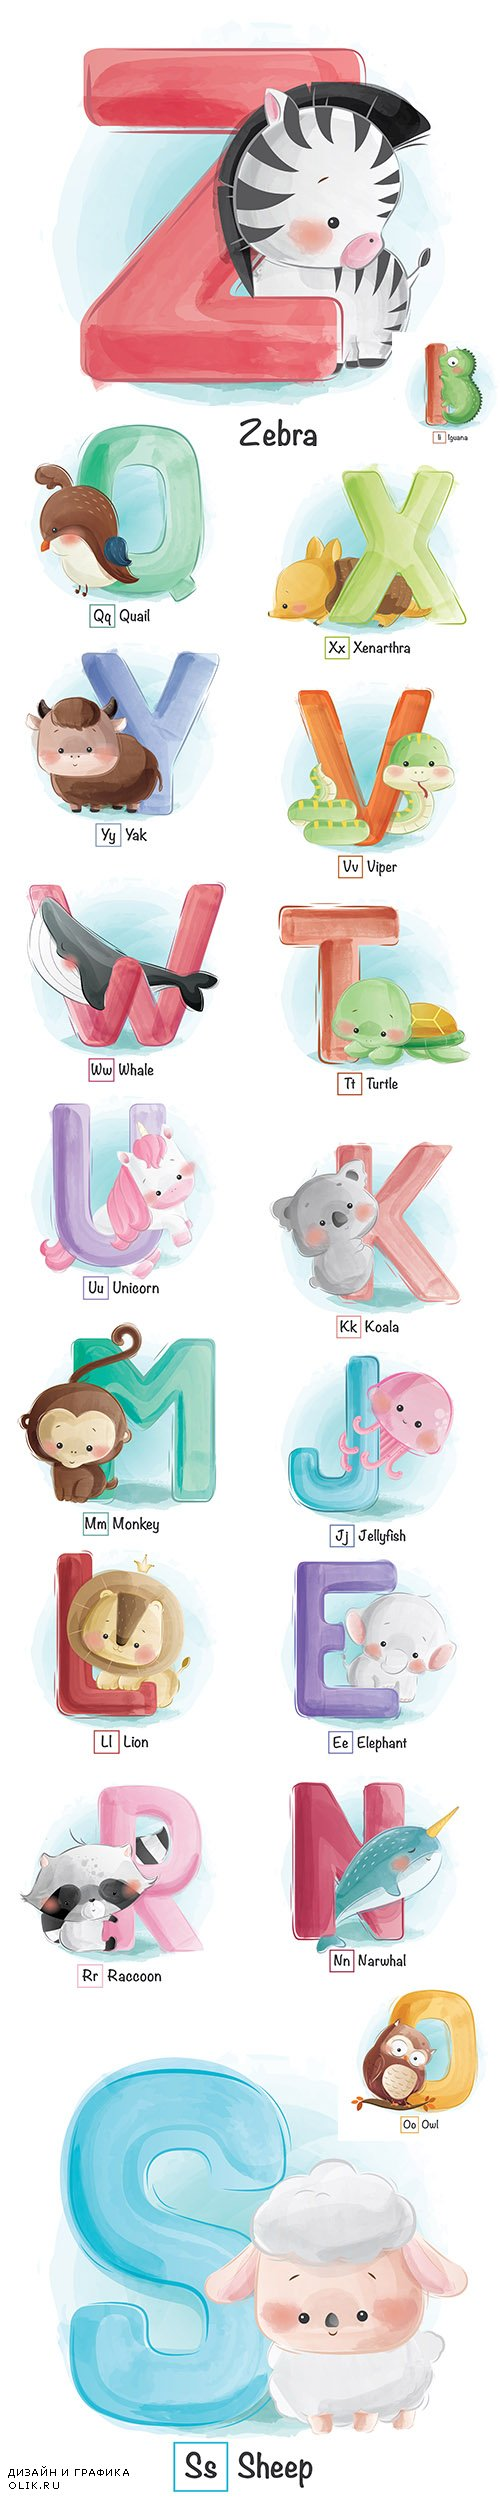 Alphabet with Funny Animal Premium Illustrations Set